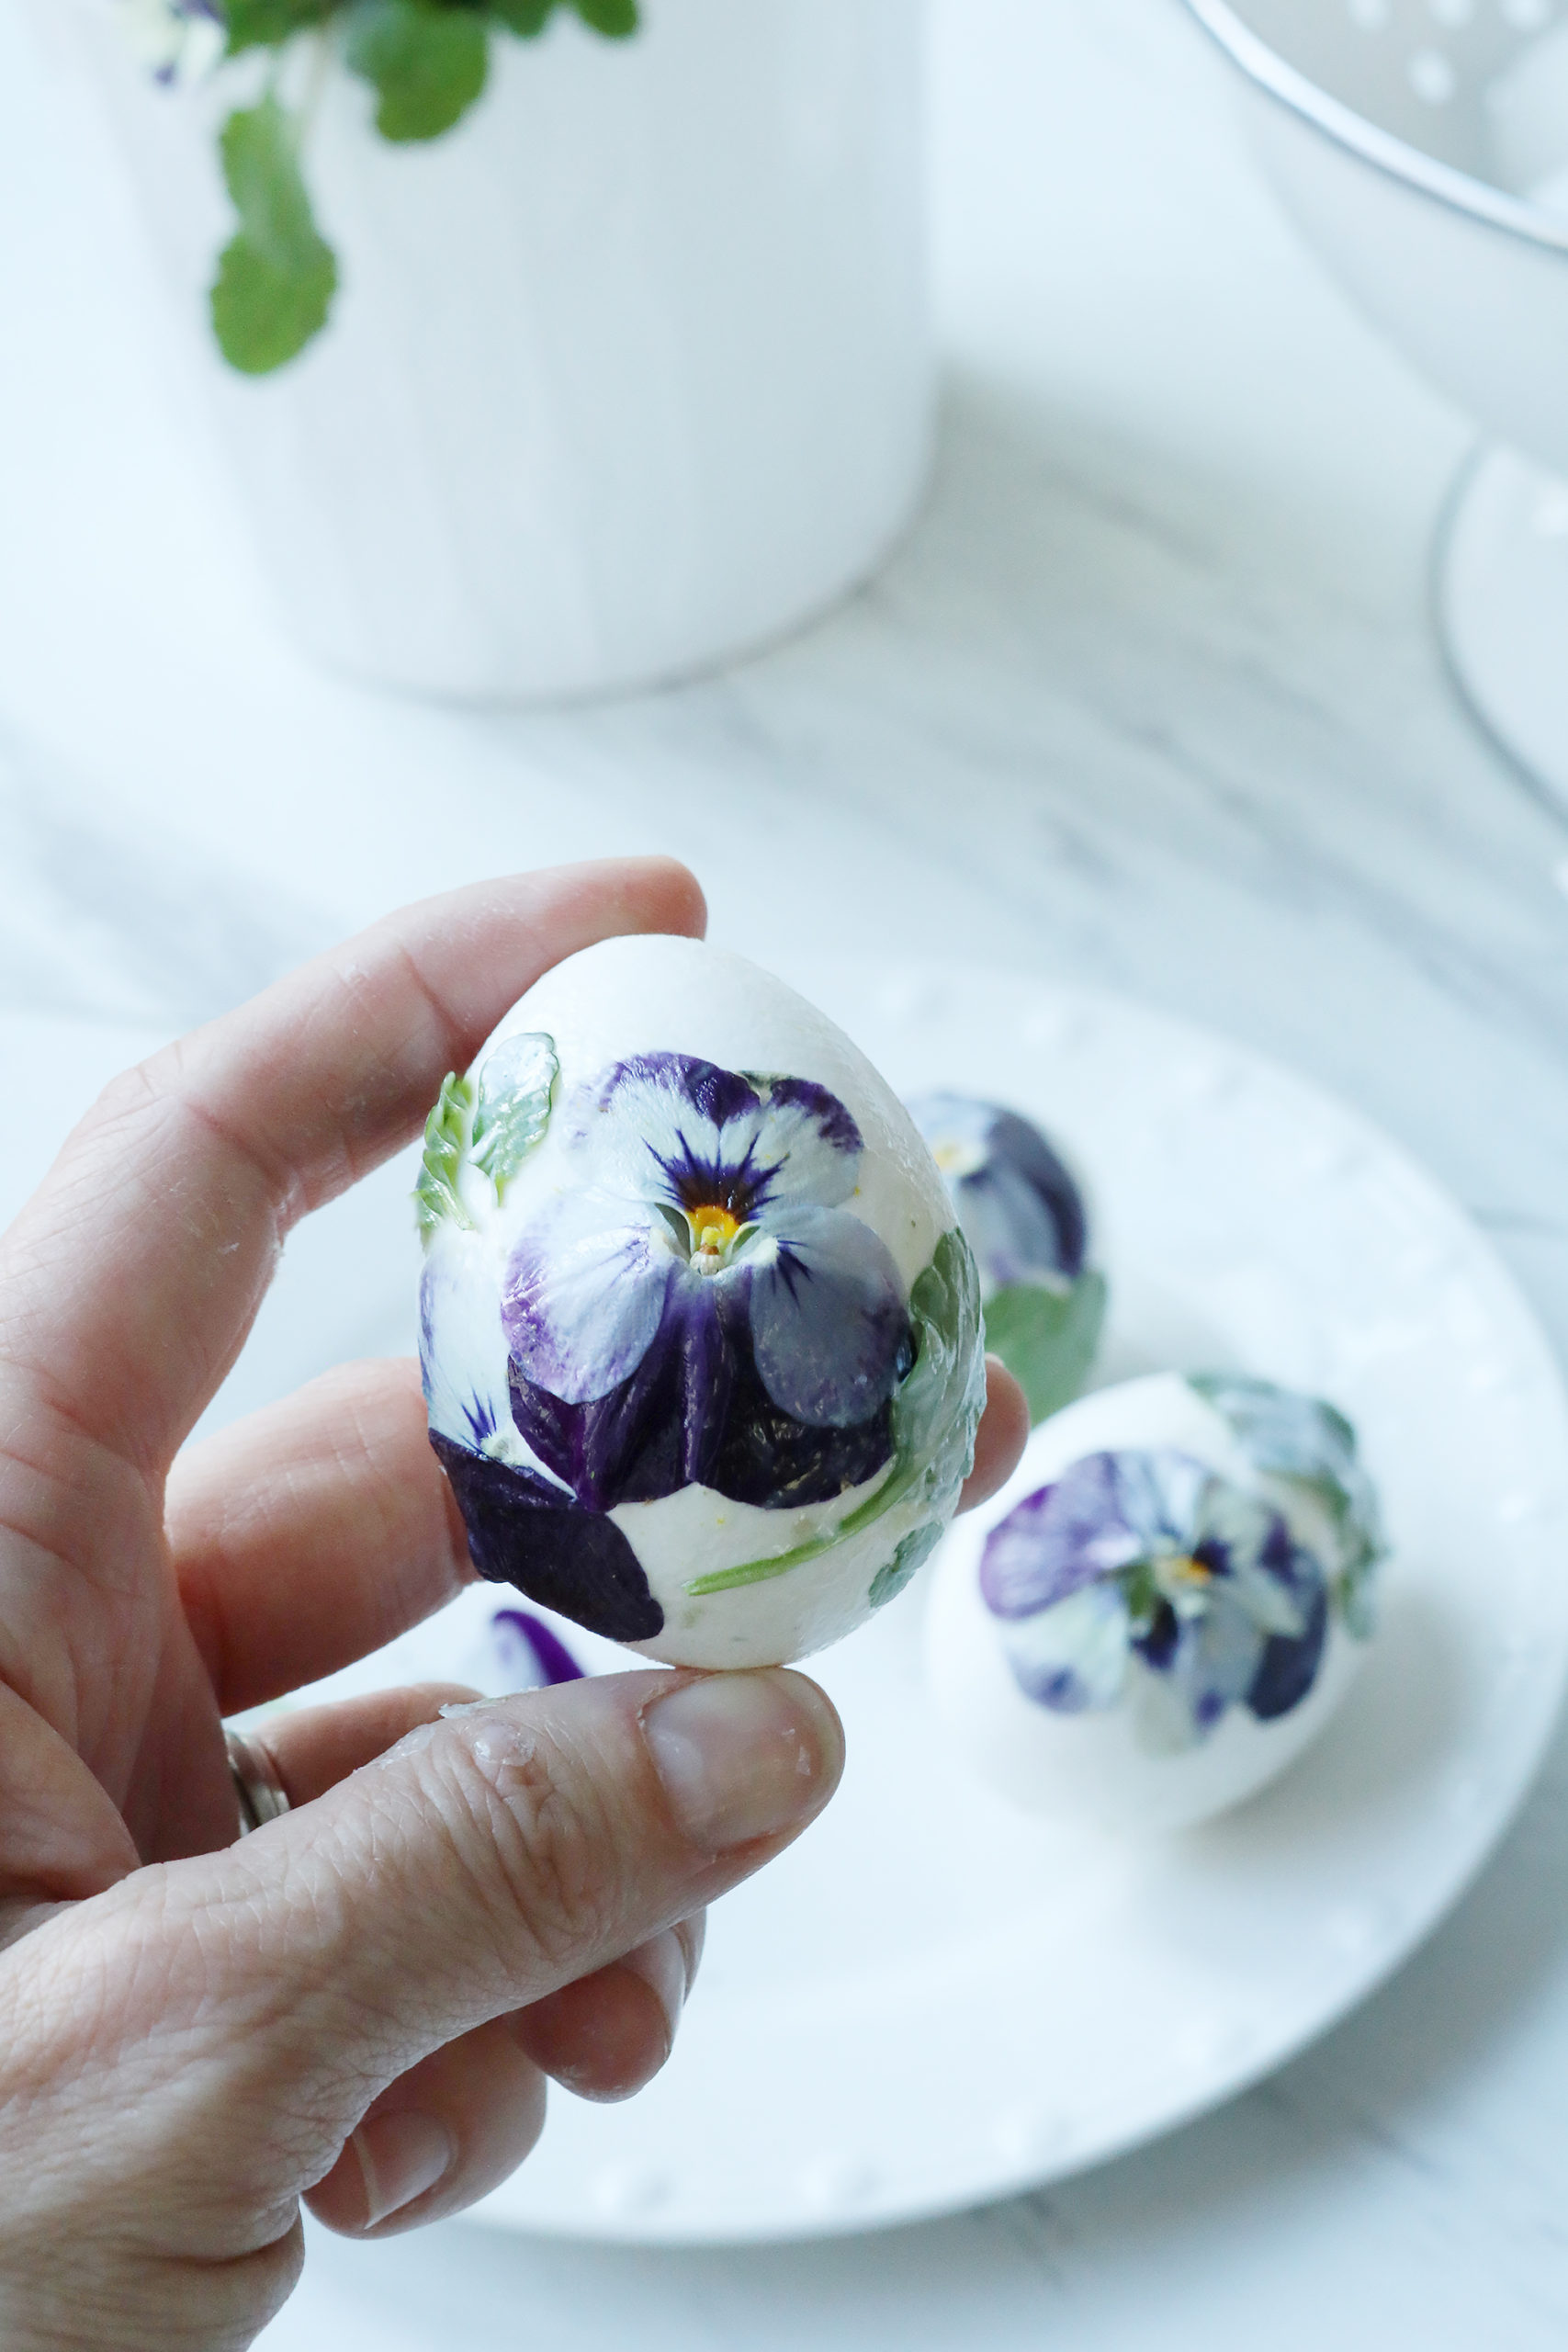 Decorate Your Easter Eggs this Year with Real Flowers and Foliage with this easy DIY flower Easter egg project || Darling Darleen